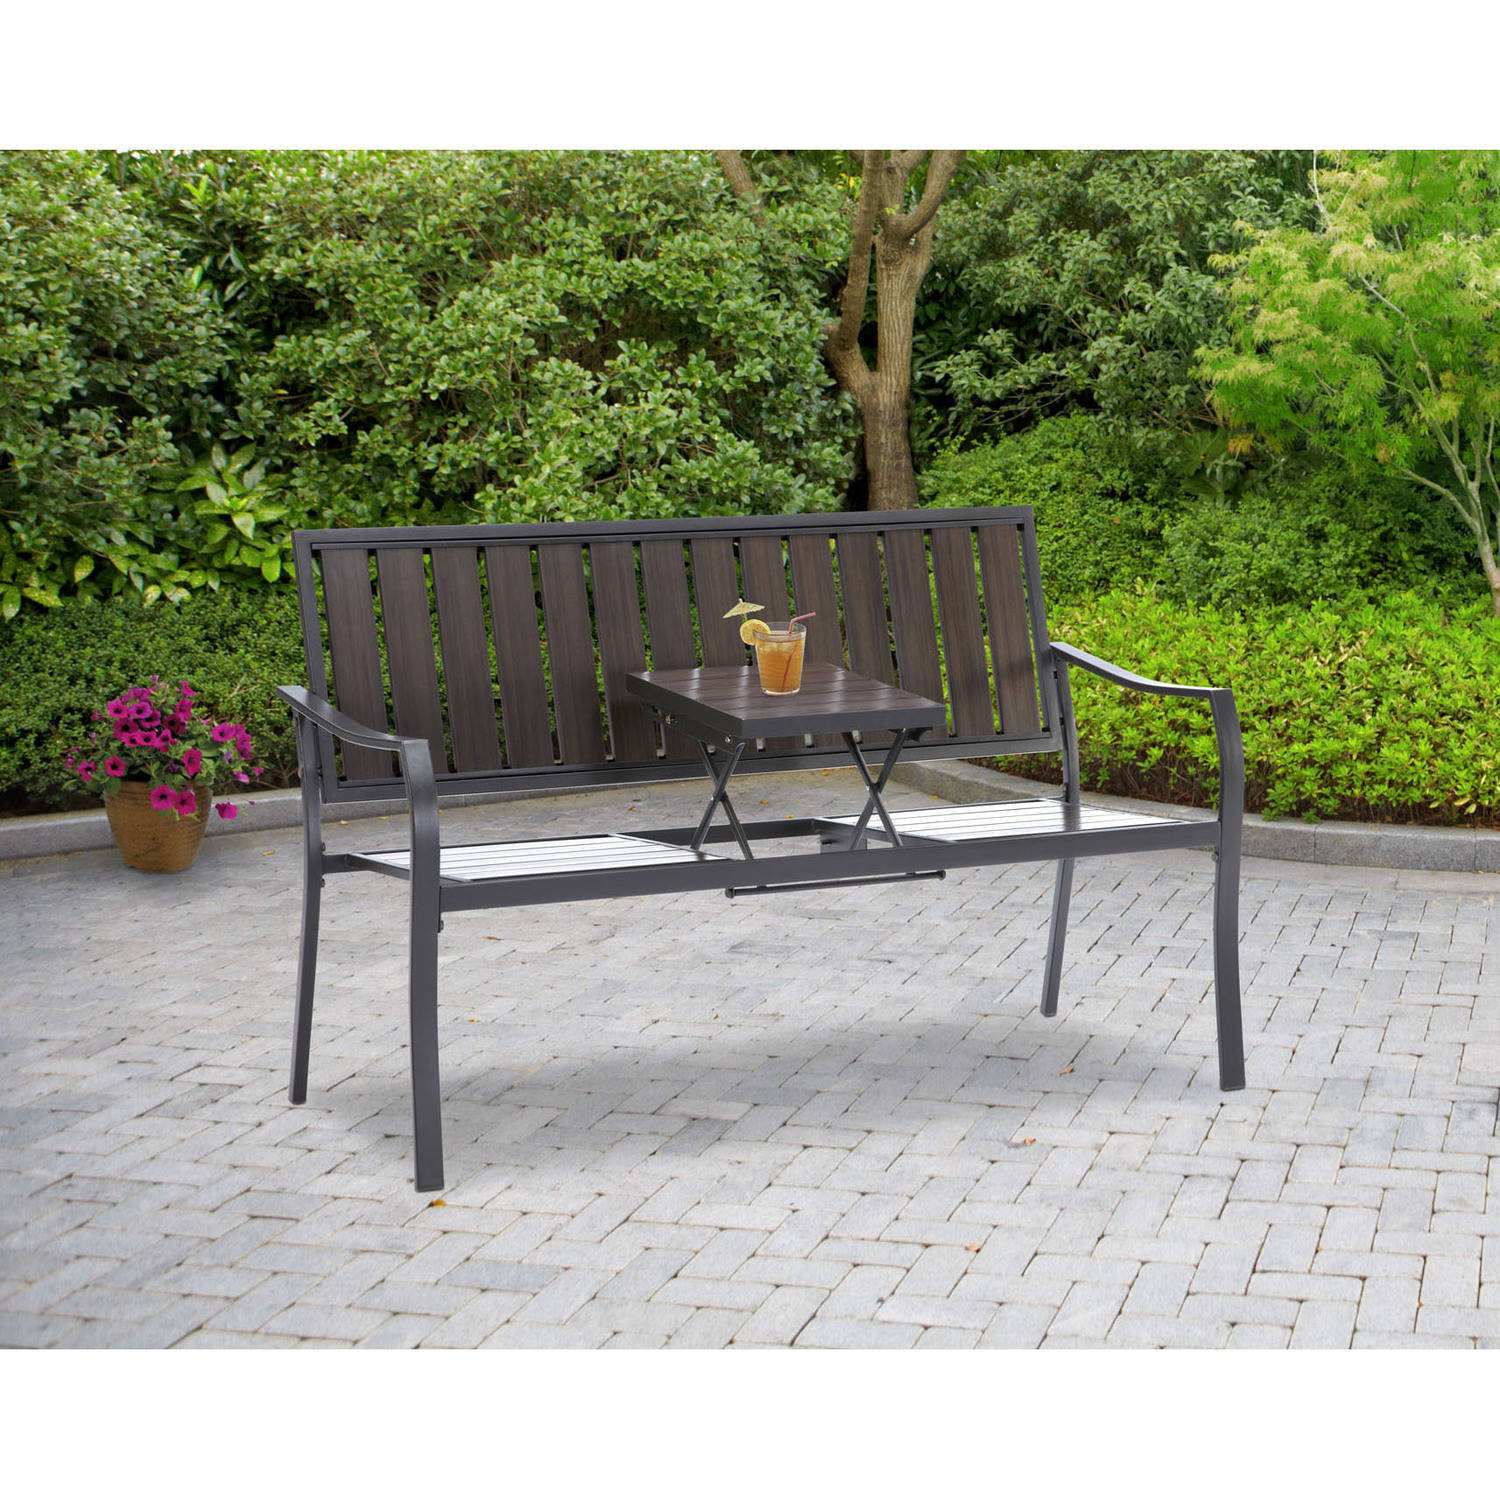 Mainstays Endurowood Pop-Up Bench, Seats 2